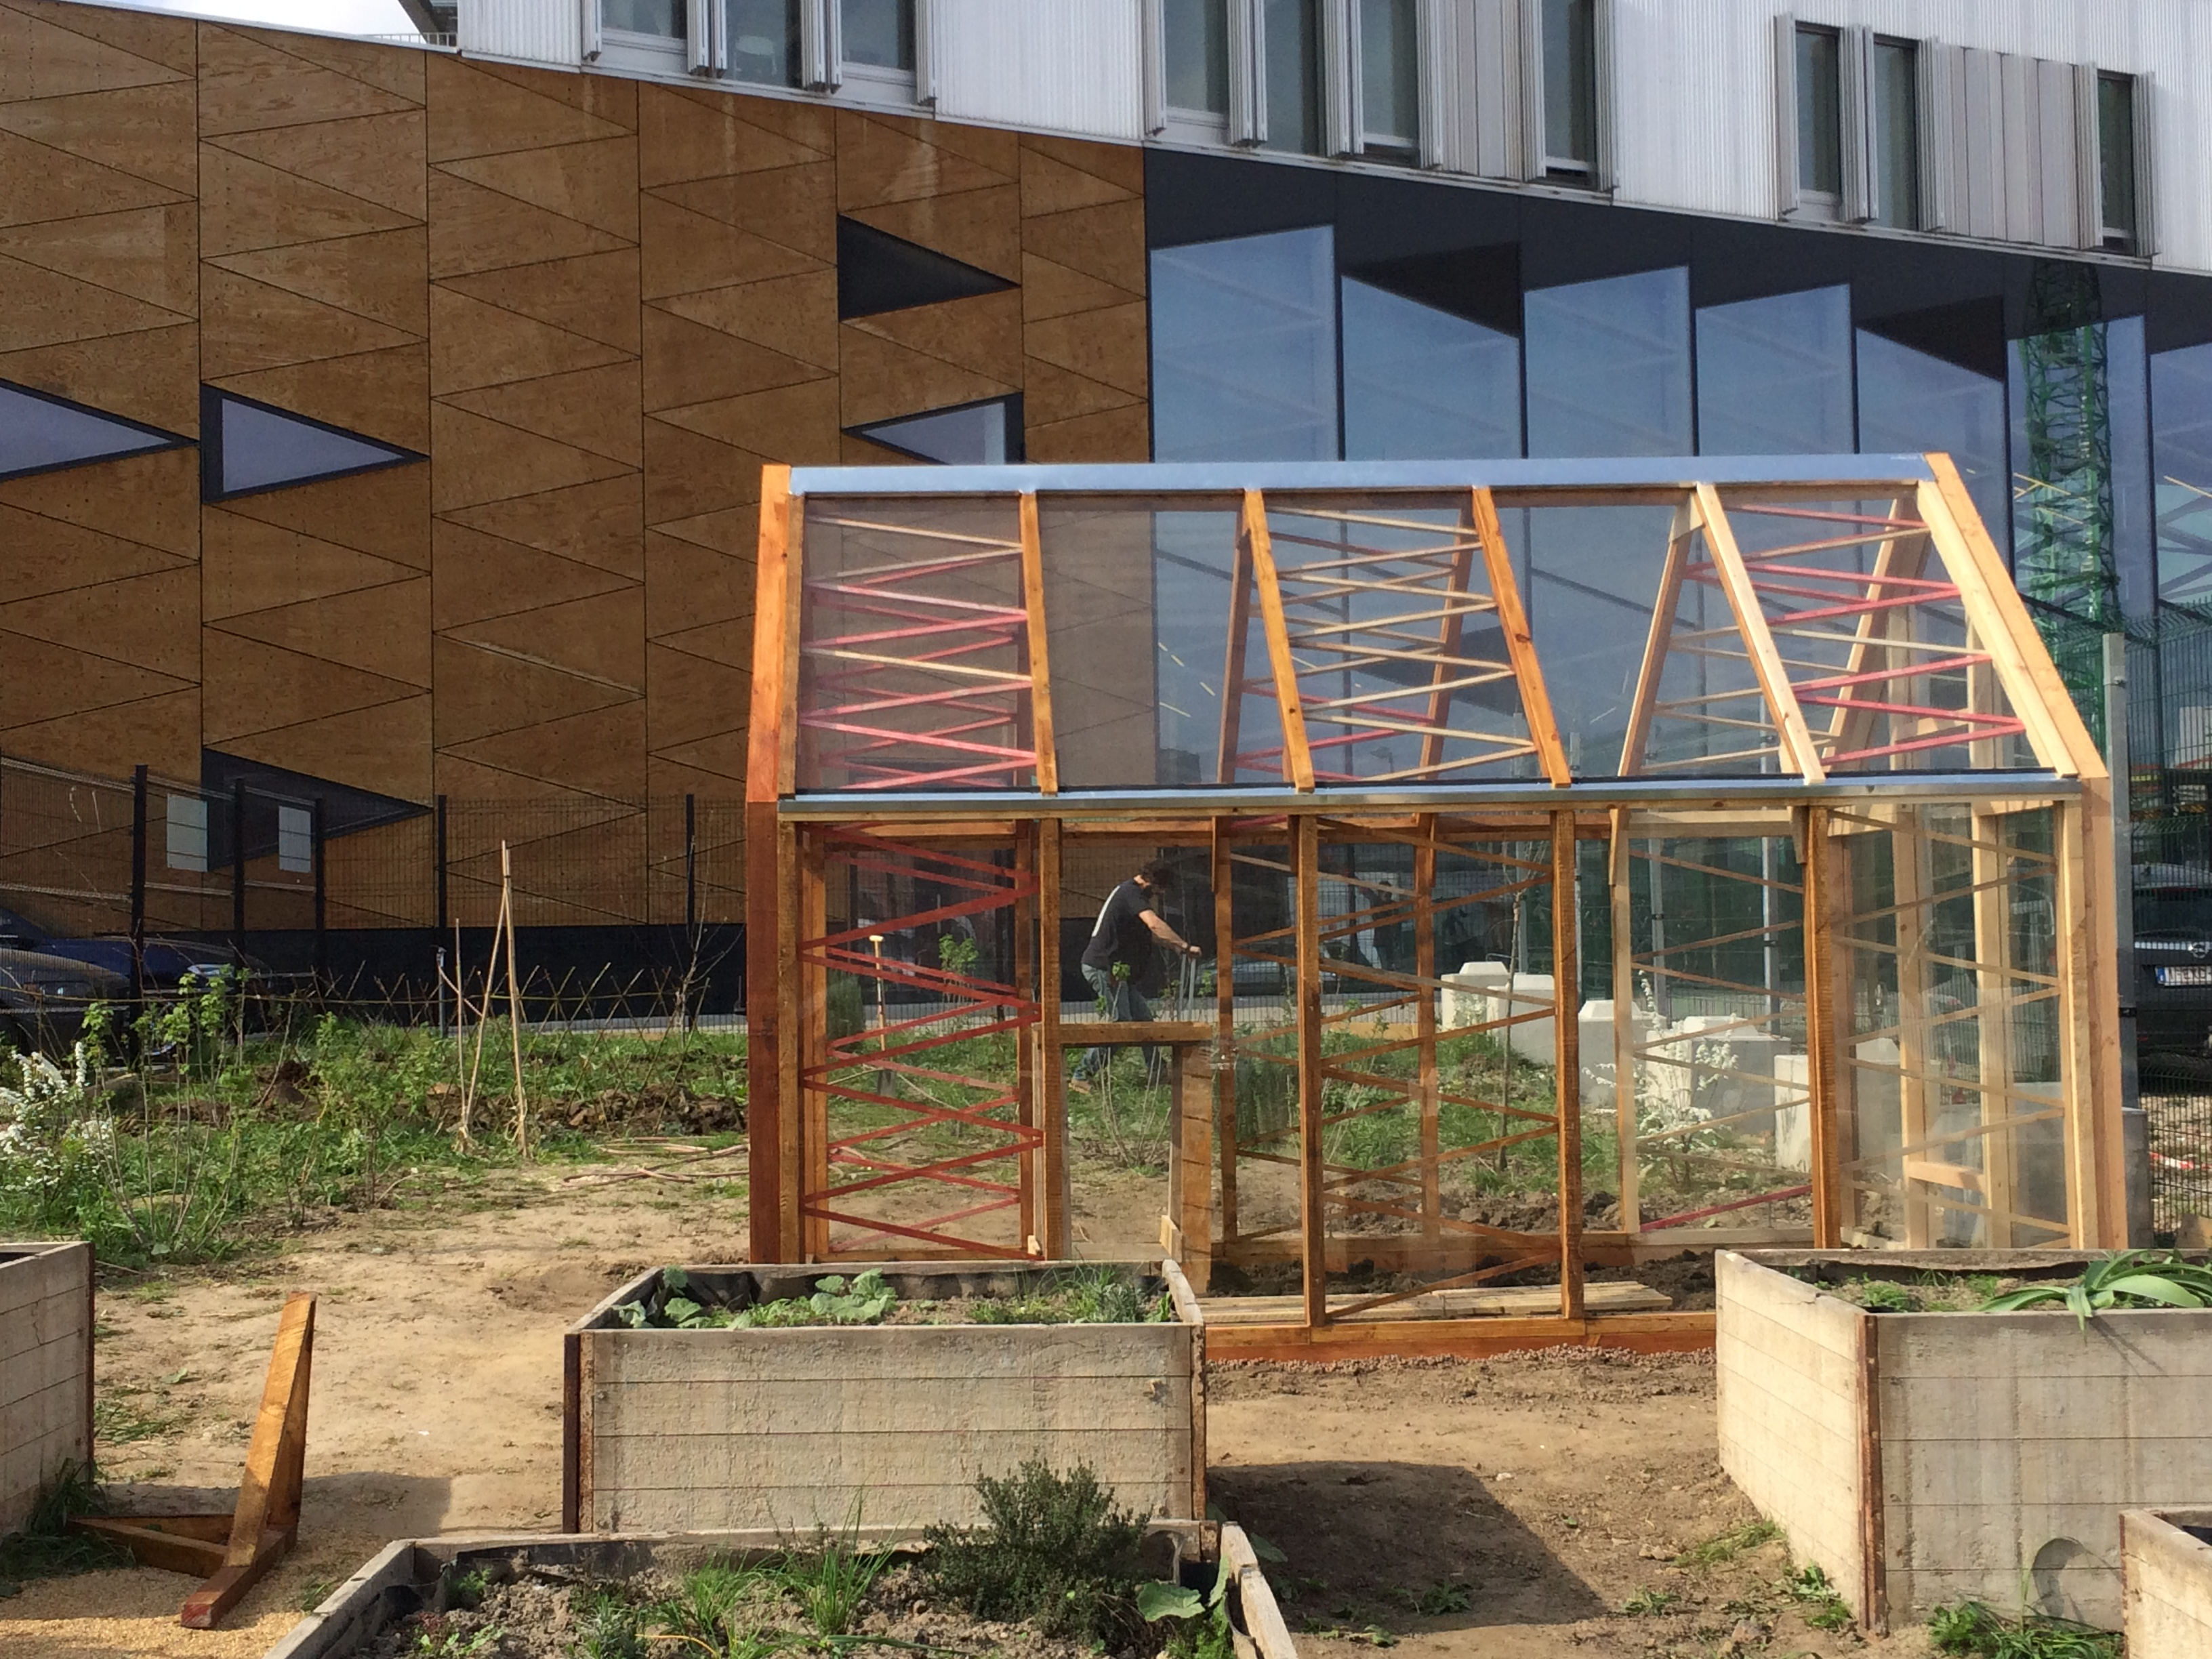 The greenhouse collective - The Tomato Chili Project A Greenhouse Designed Built And Marketed Using Circular Economy Principles 13147577_586557304855409_8762037173439999468_o